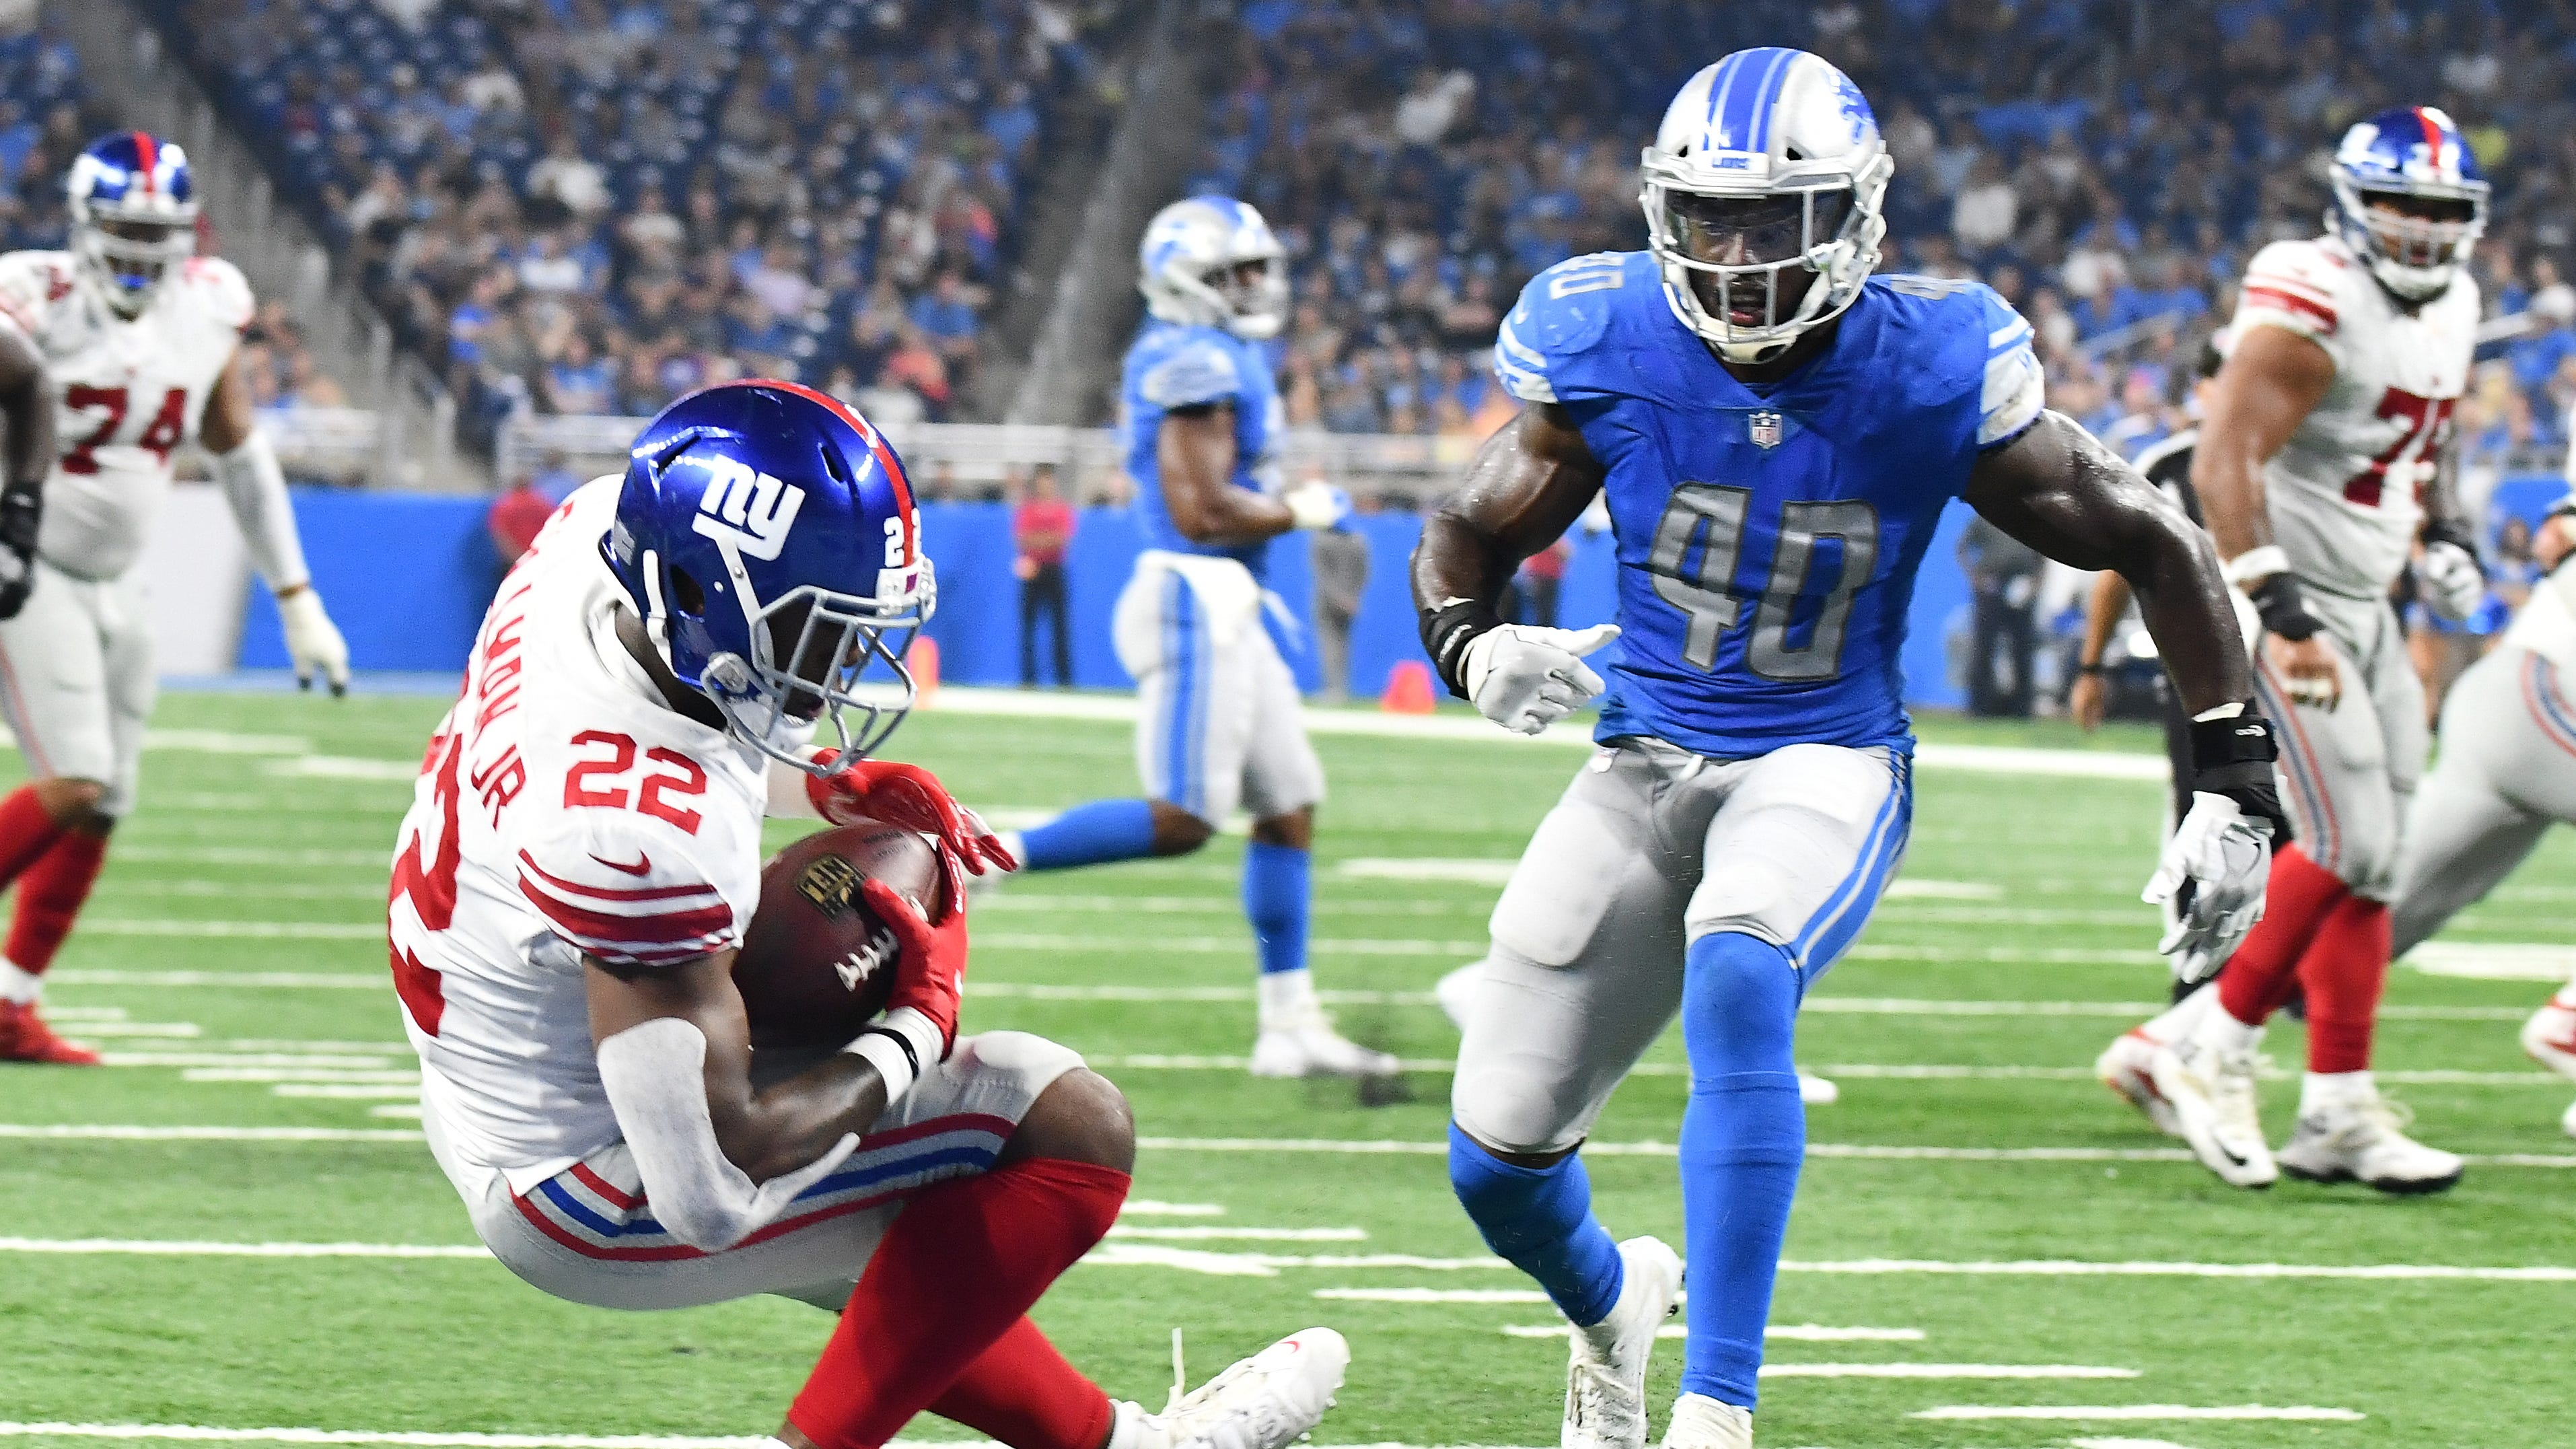 Wayne Gallman Jr. scores one of the four touchdowns the Giants put up on the Lions in Friday's preseason game.